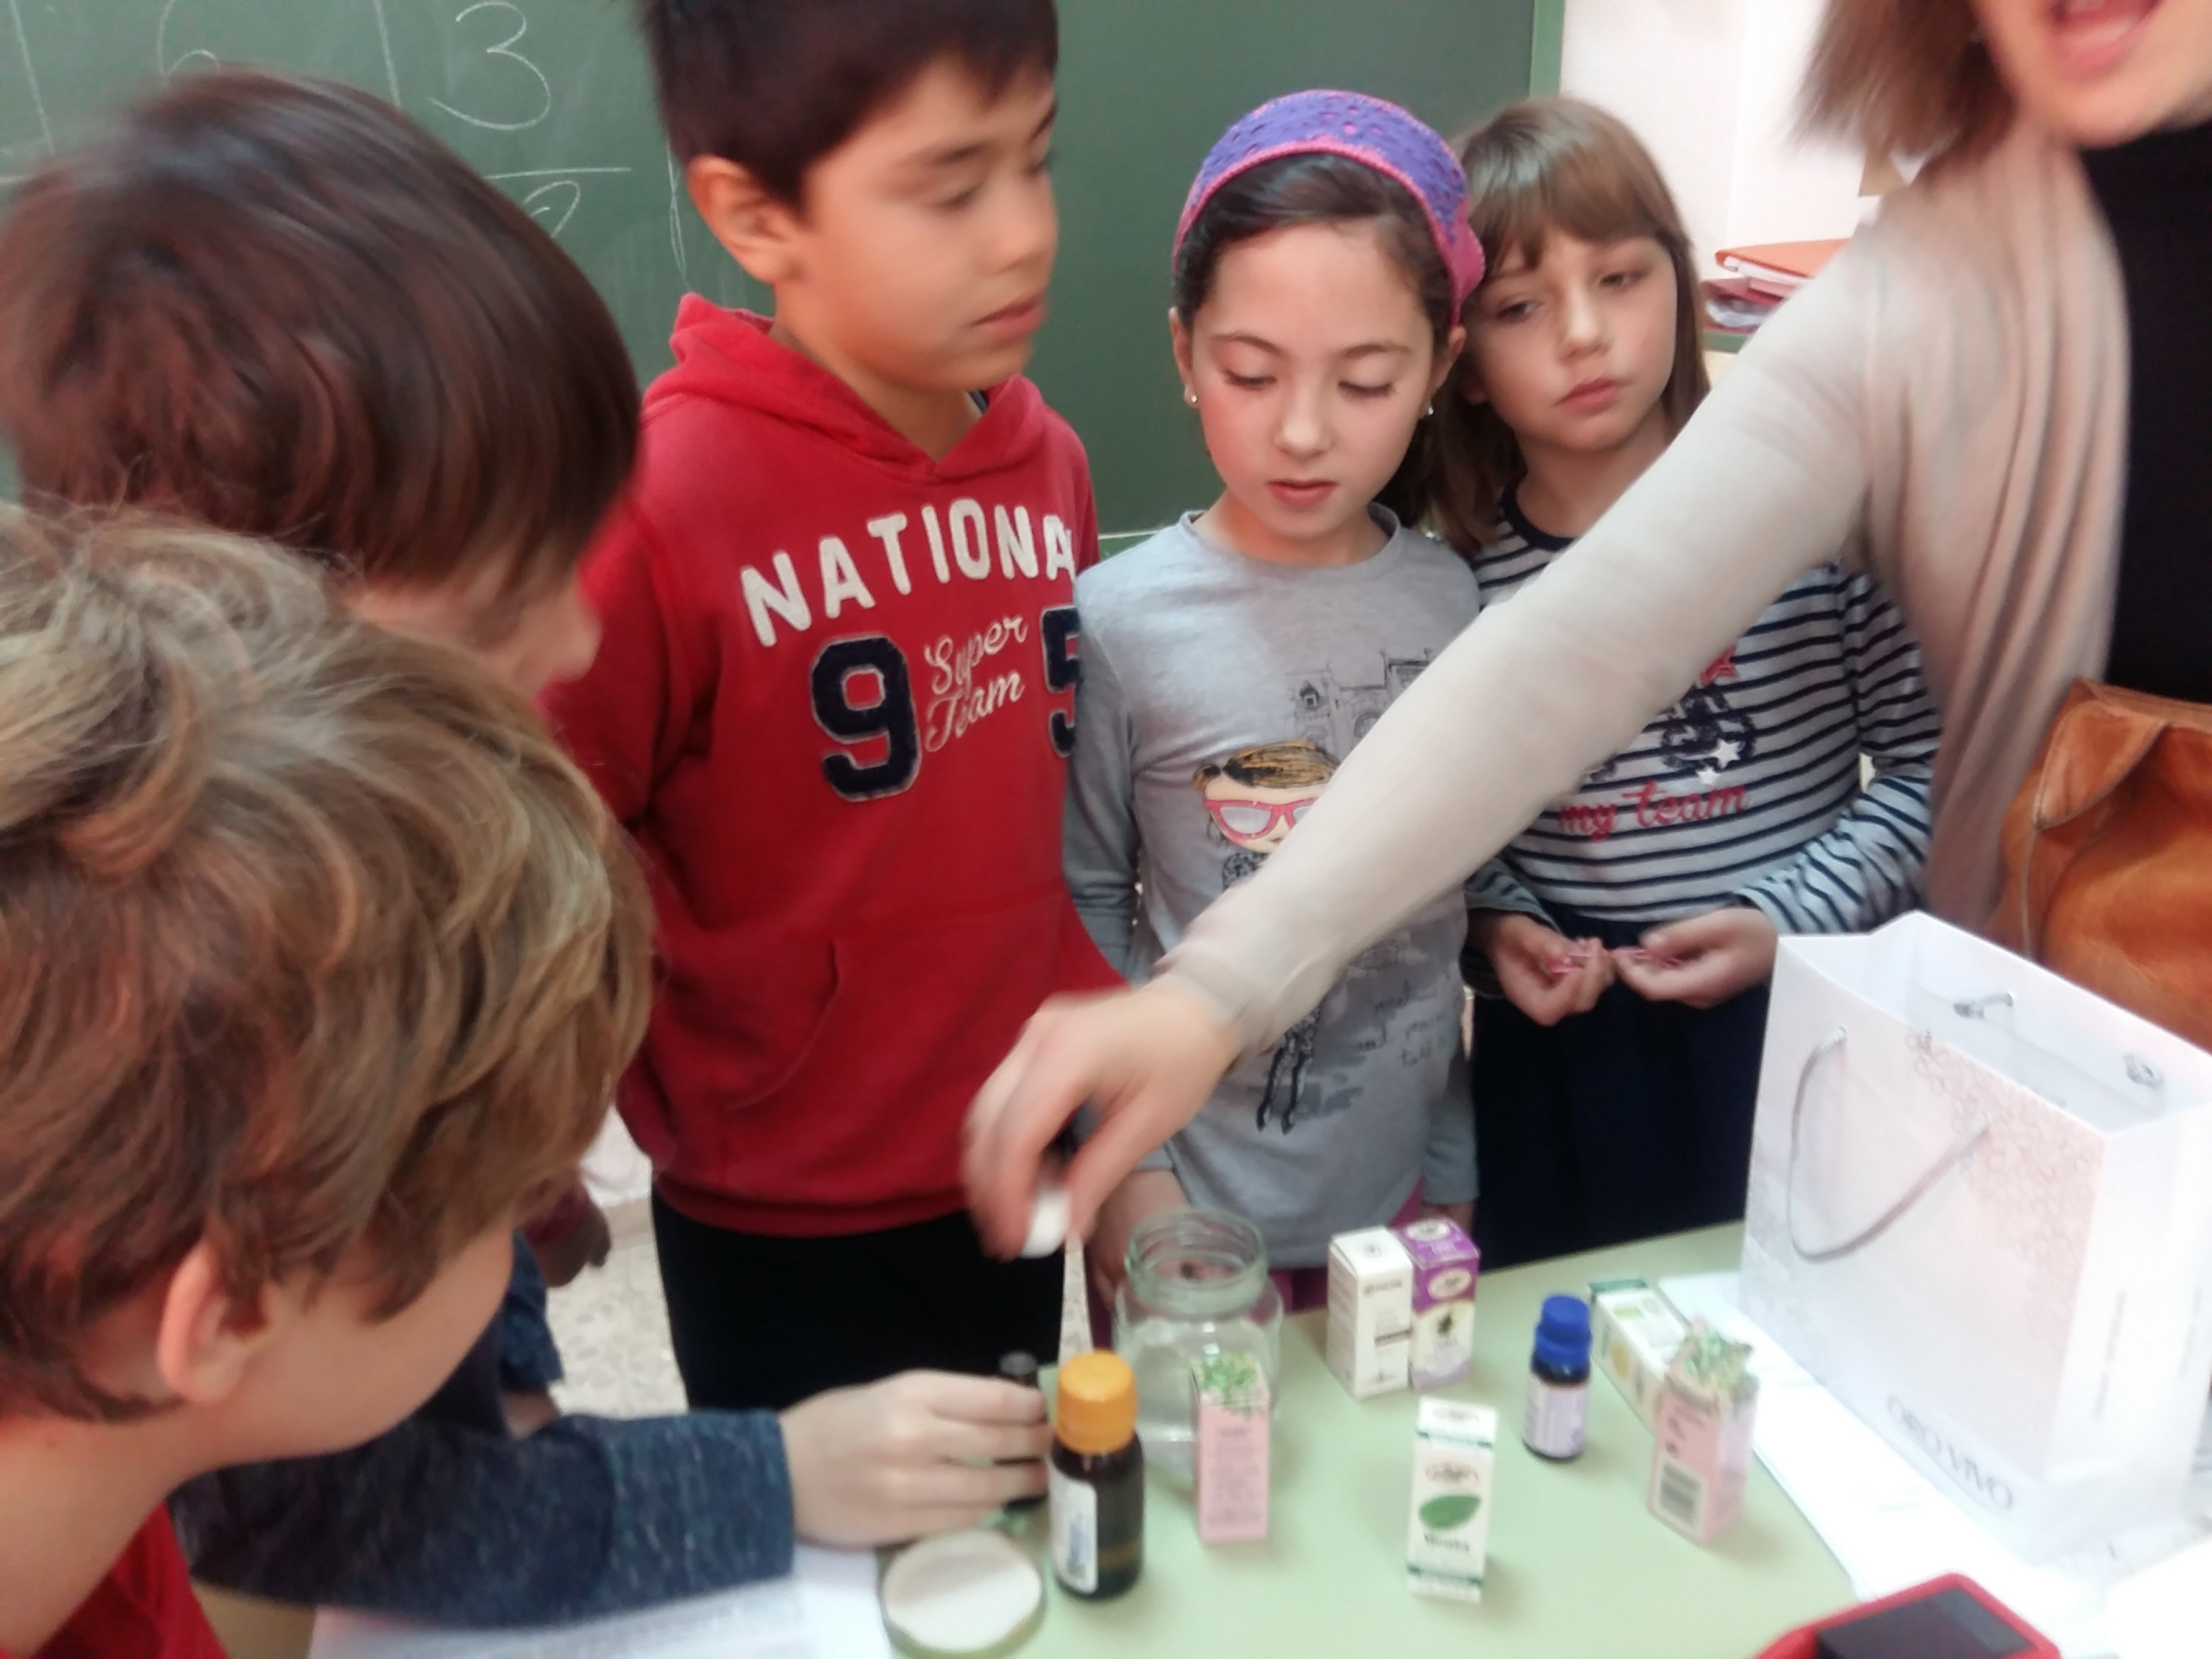 Science experiments. Parfum. 19